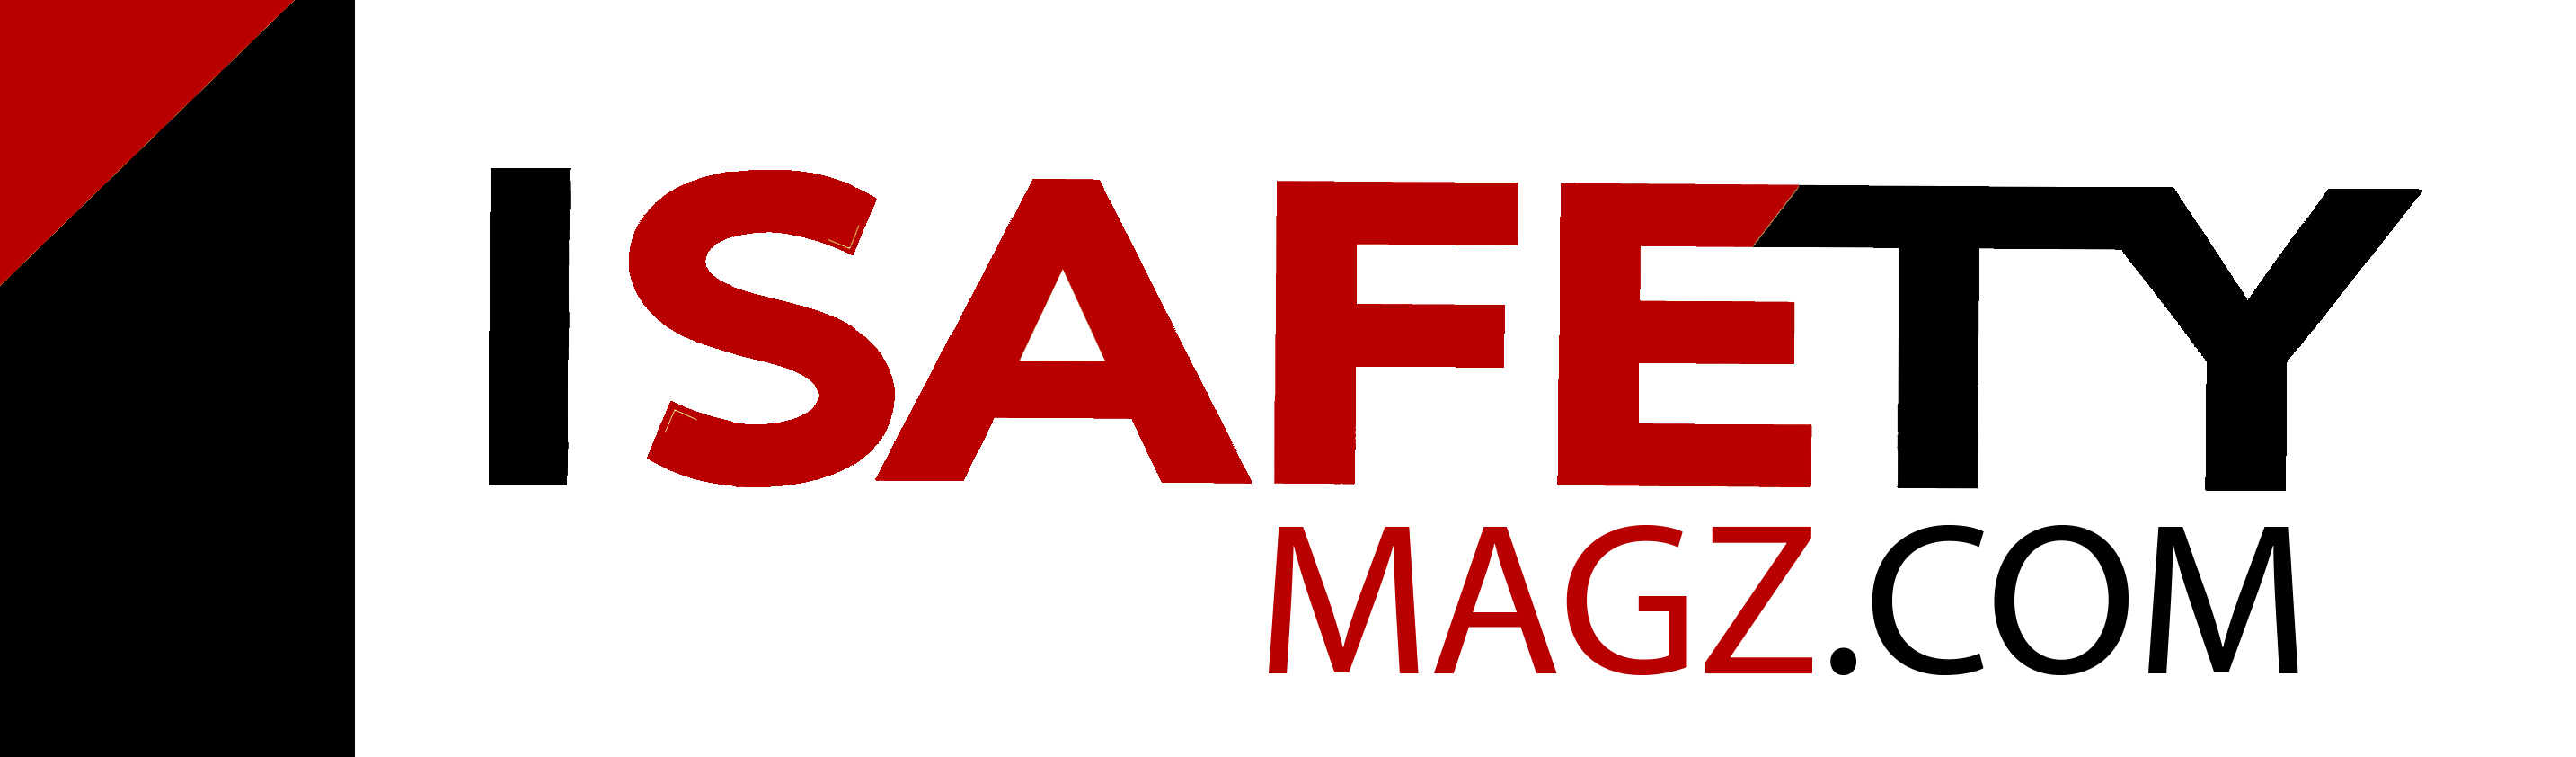 ISAFETY MAGZ. - SAFETY | HEALTH | ENVIRONMENT